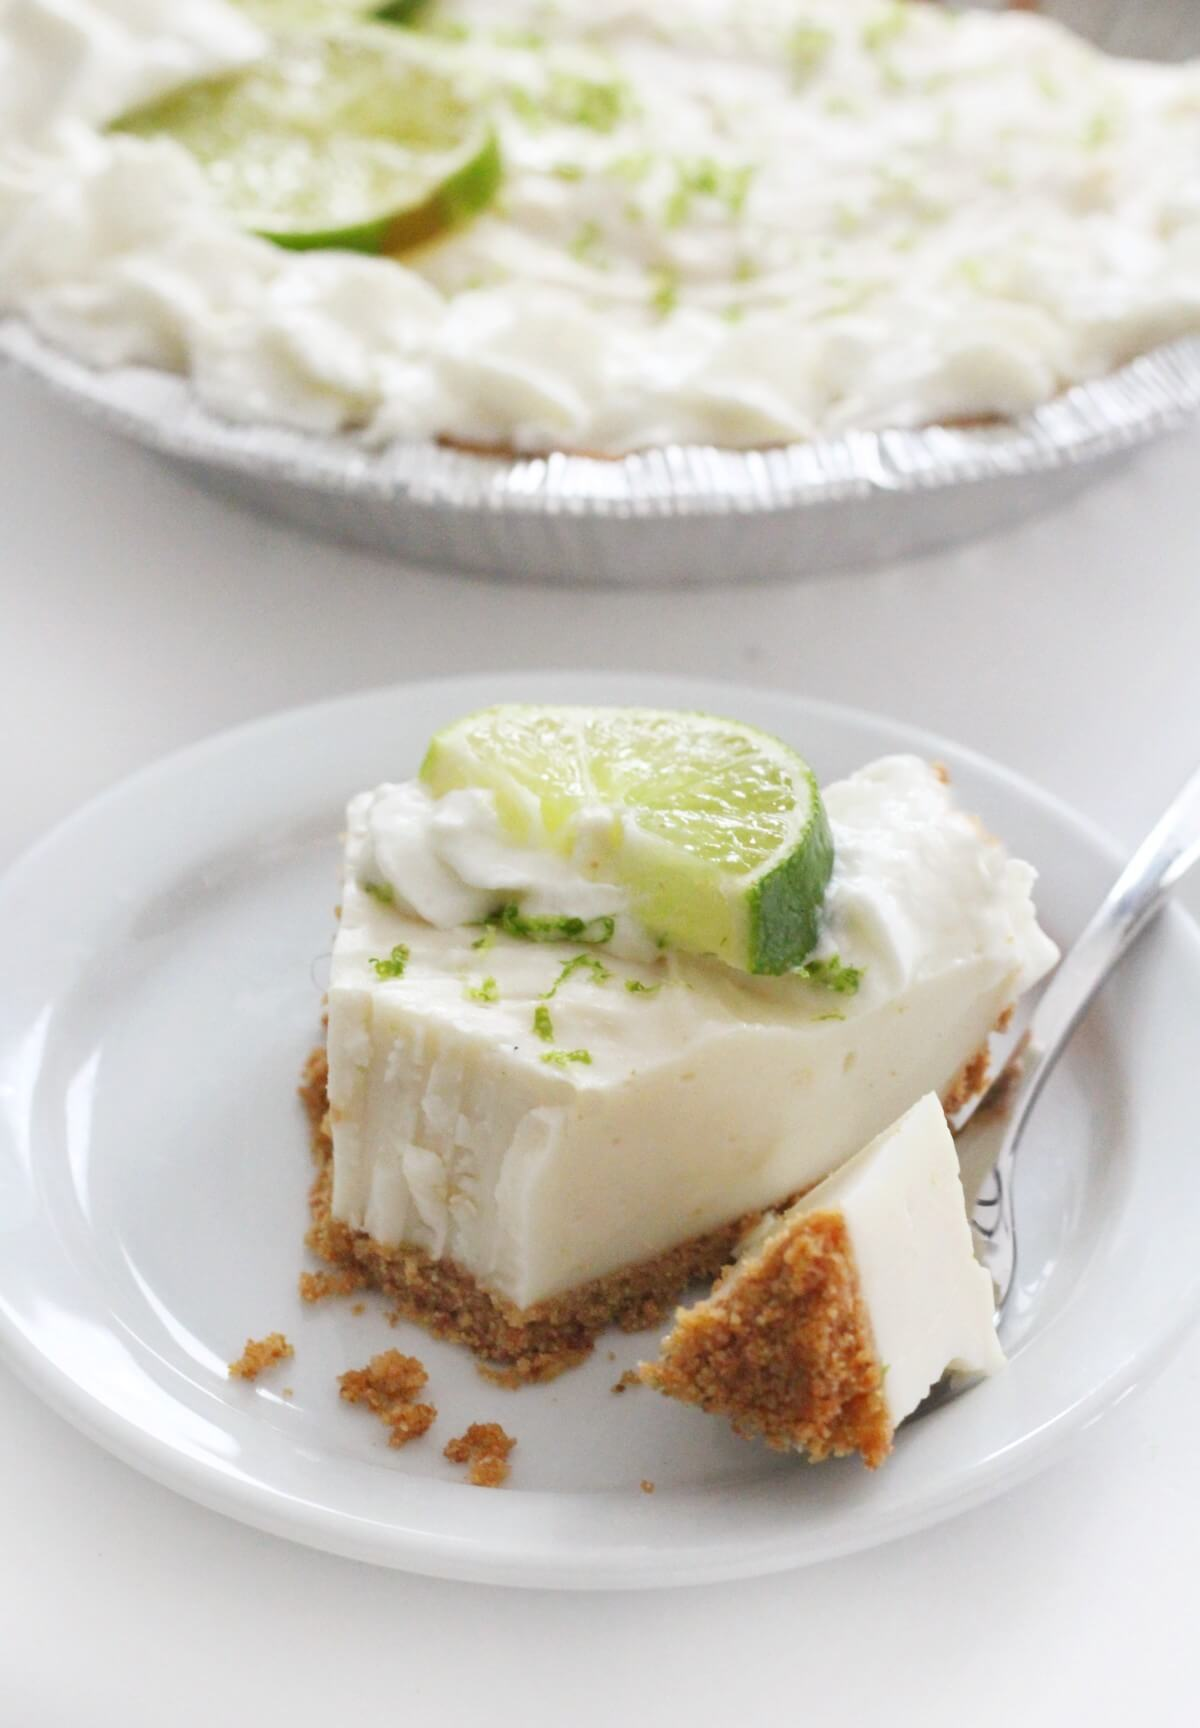 slice of vegan key lime pie and full pie in background